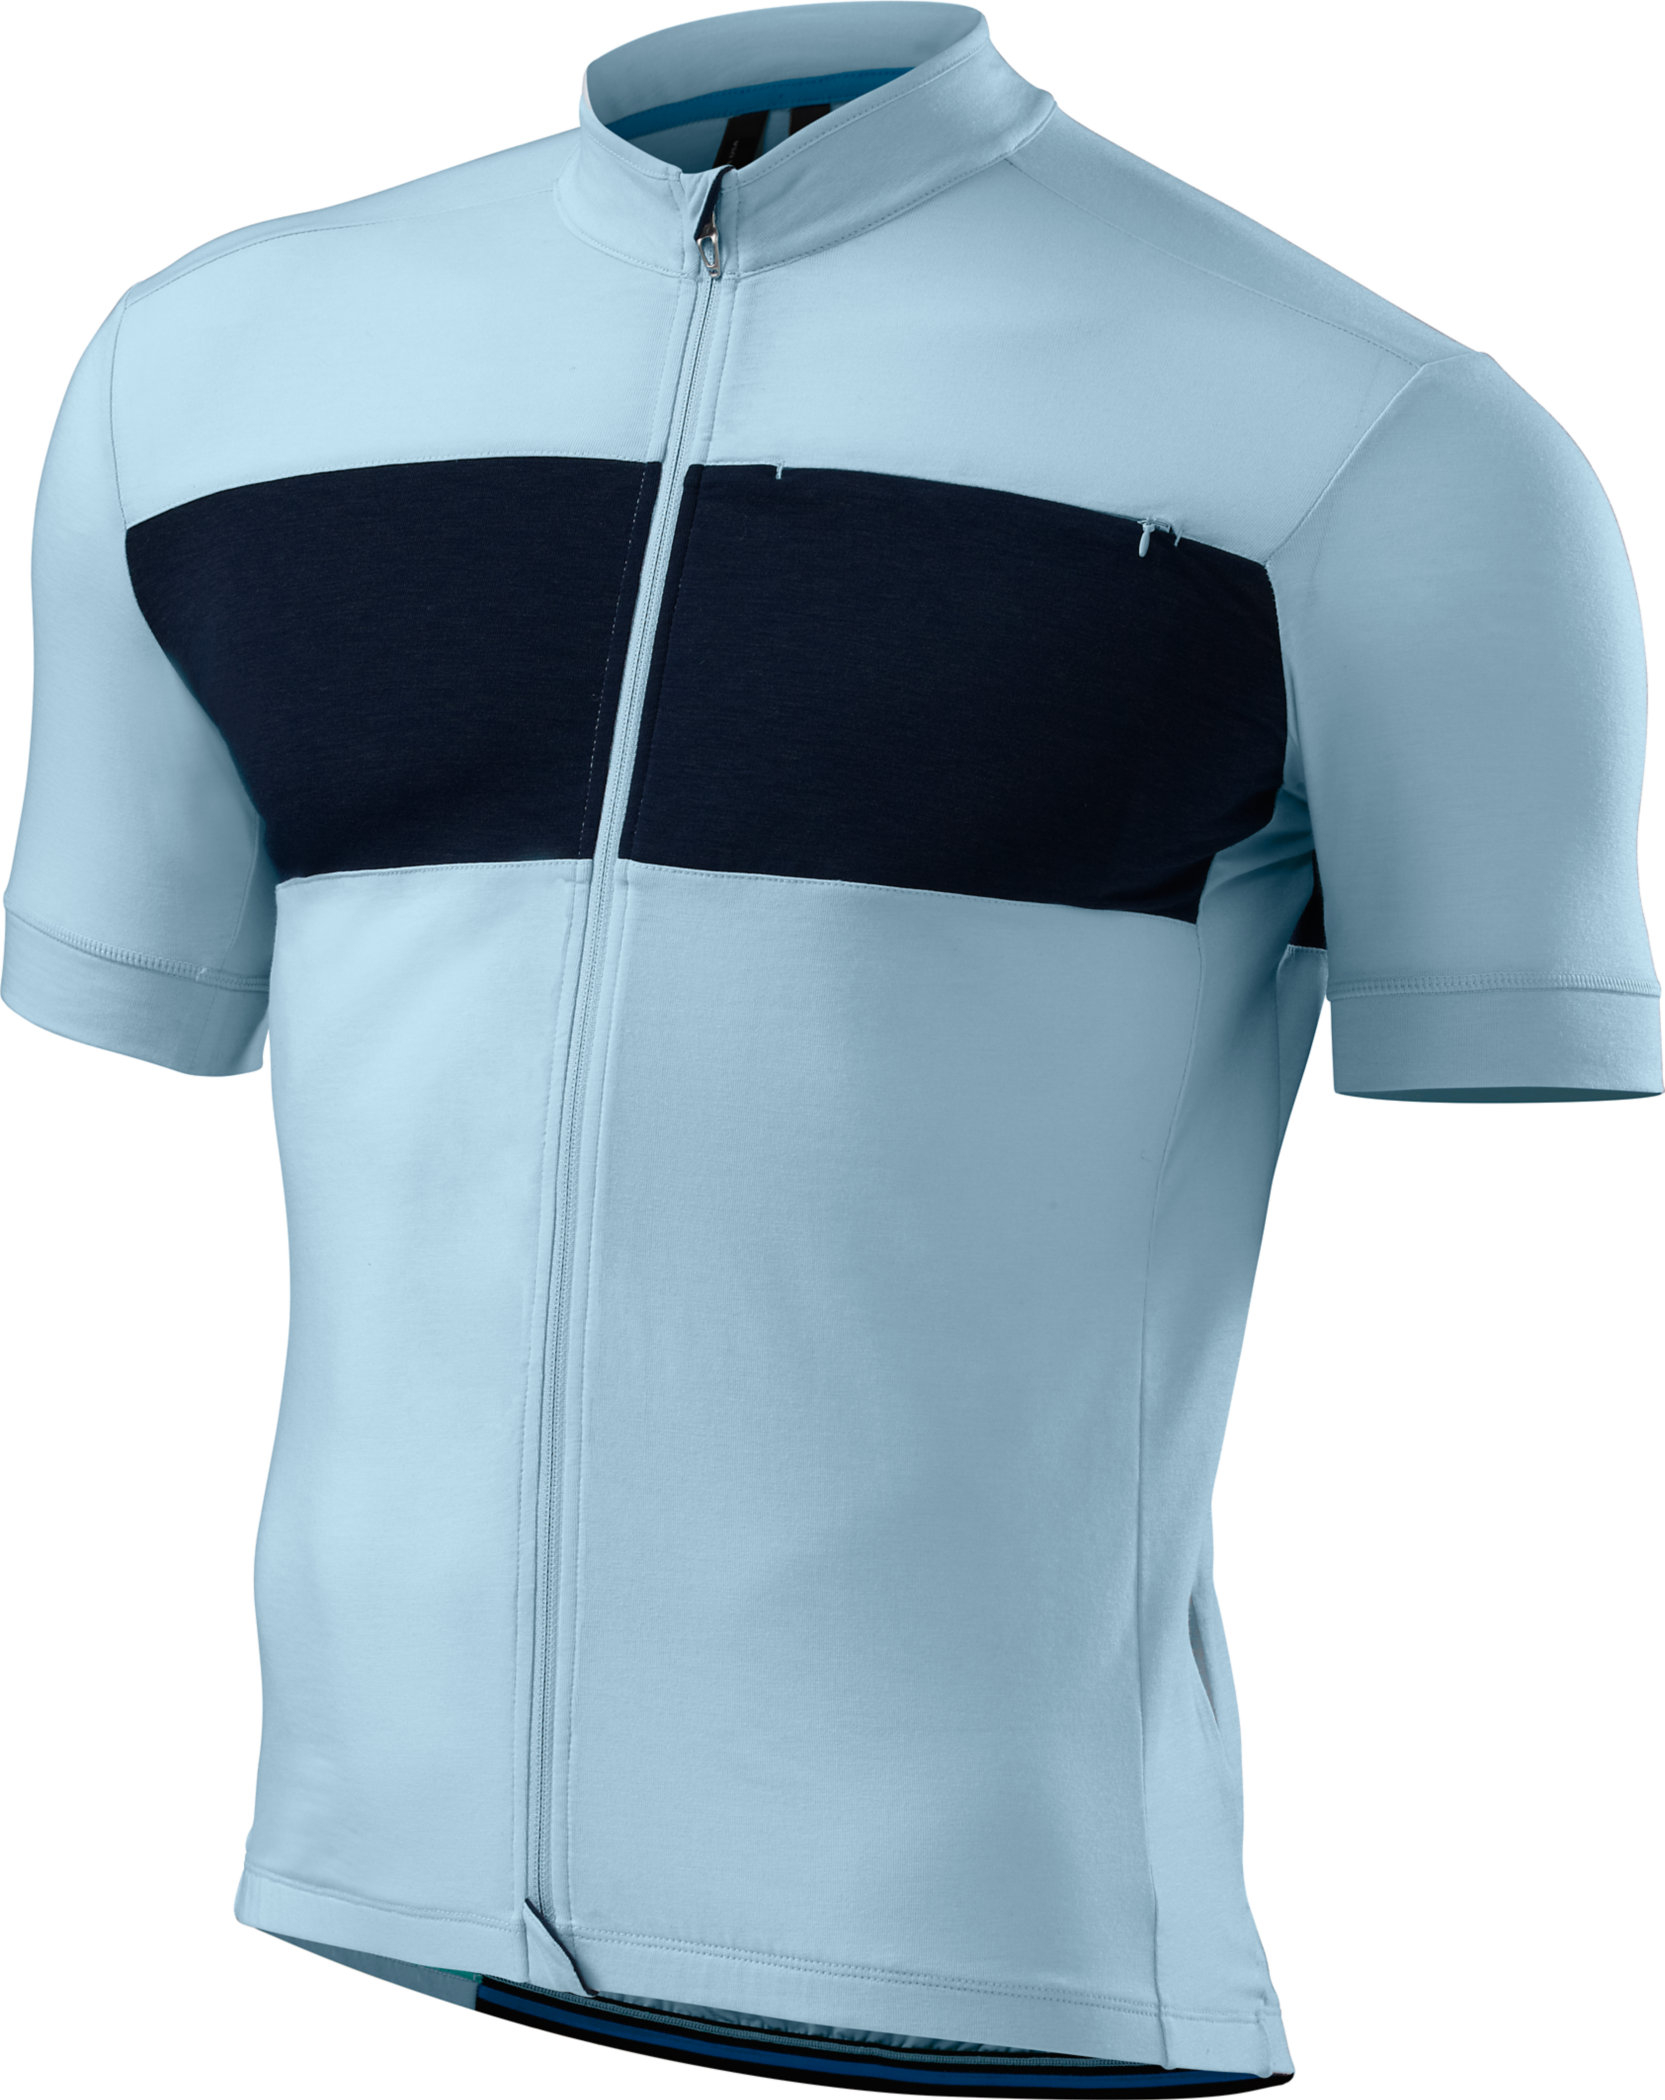 2017 Specialized RBX drirelease® Merino Jersey - Specialized Concept Store f76d6b604